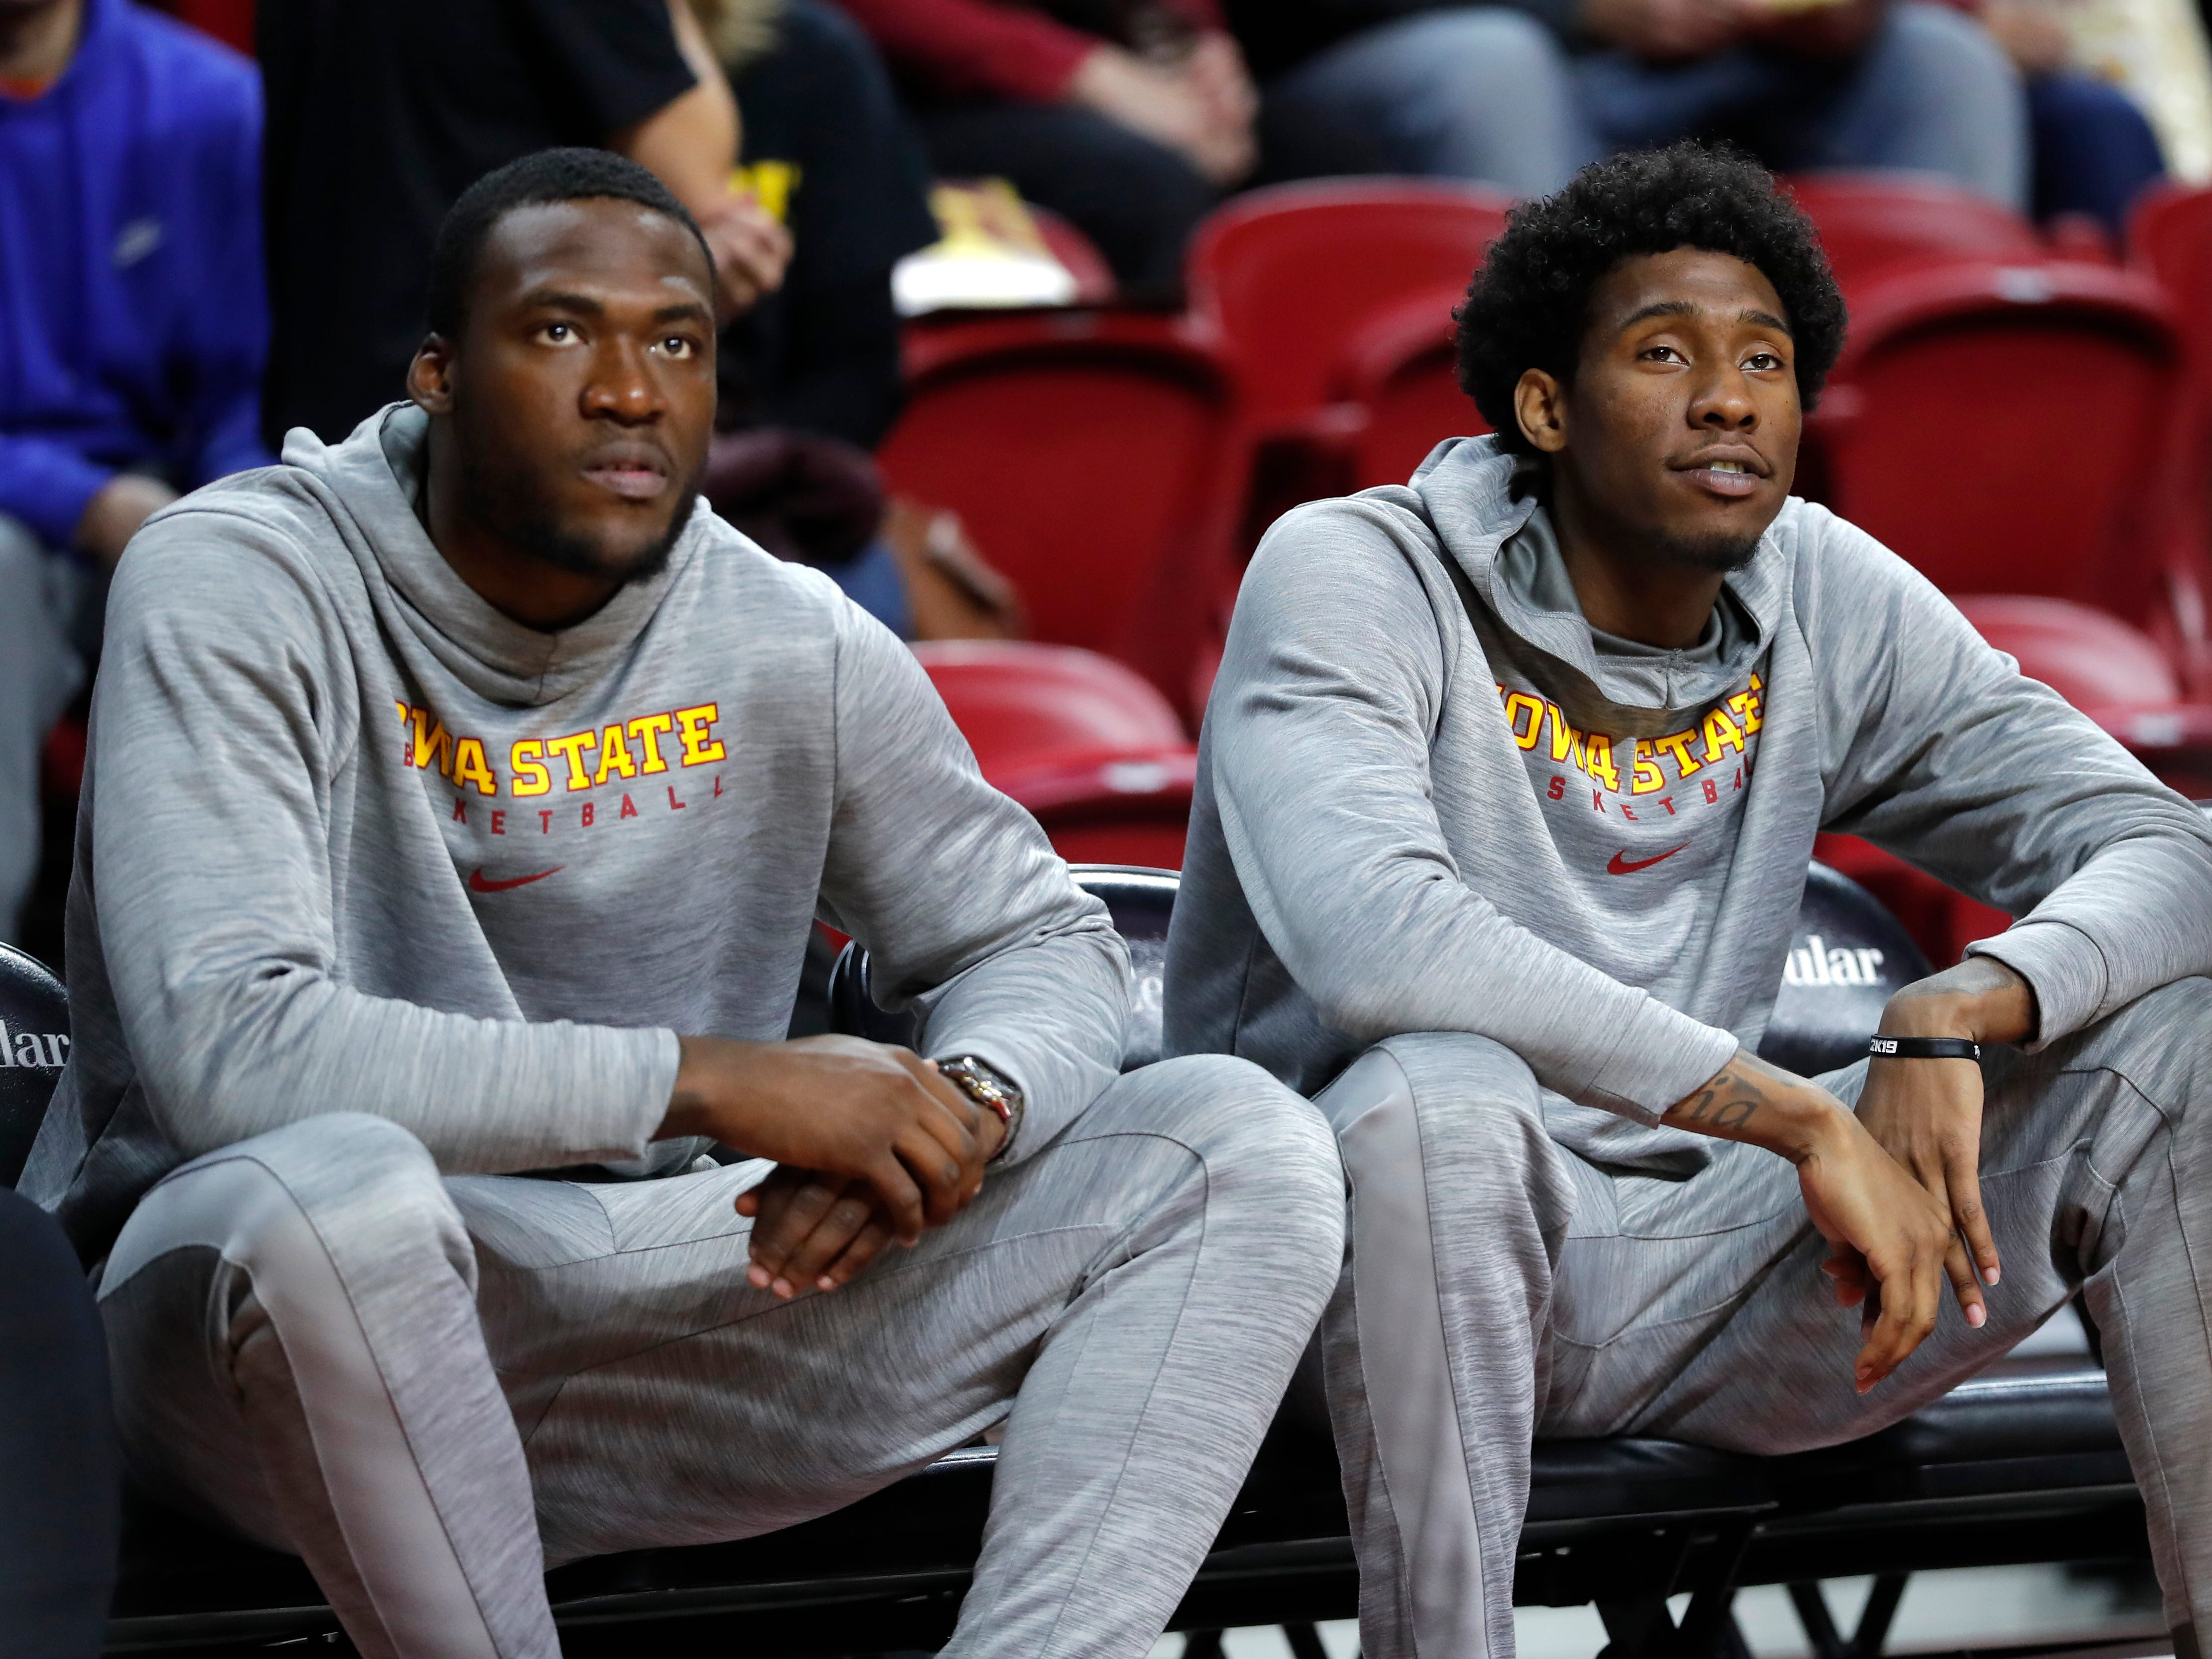 Iowa State forward Cameron Lard, left, and forward Zoran Talley Jr. sit on the bench before an NCAA college basketball game against Missouri, Friday, Nov. 9, 2018, in Ames, Iowa.